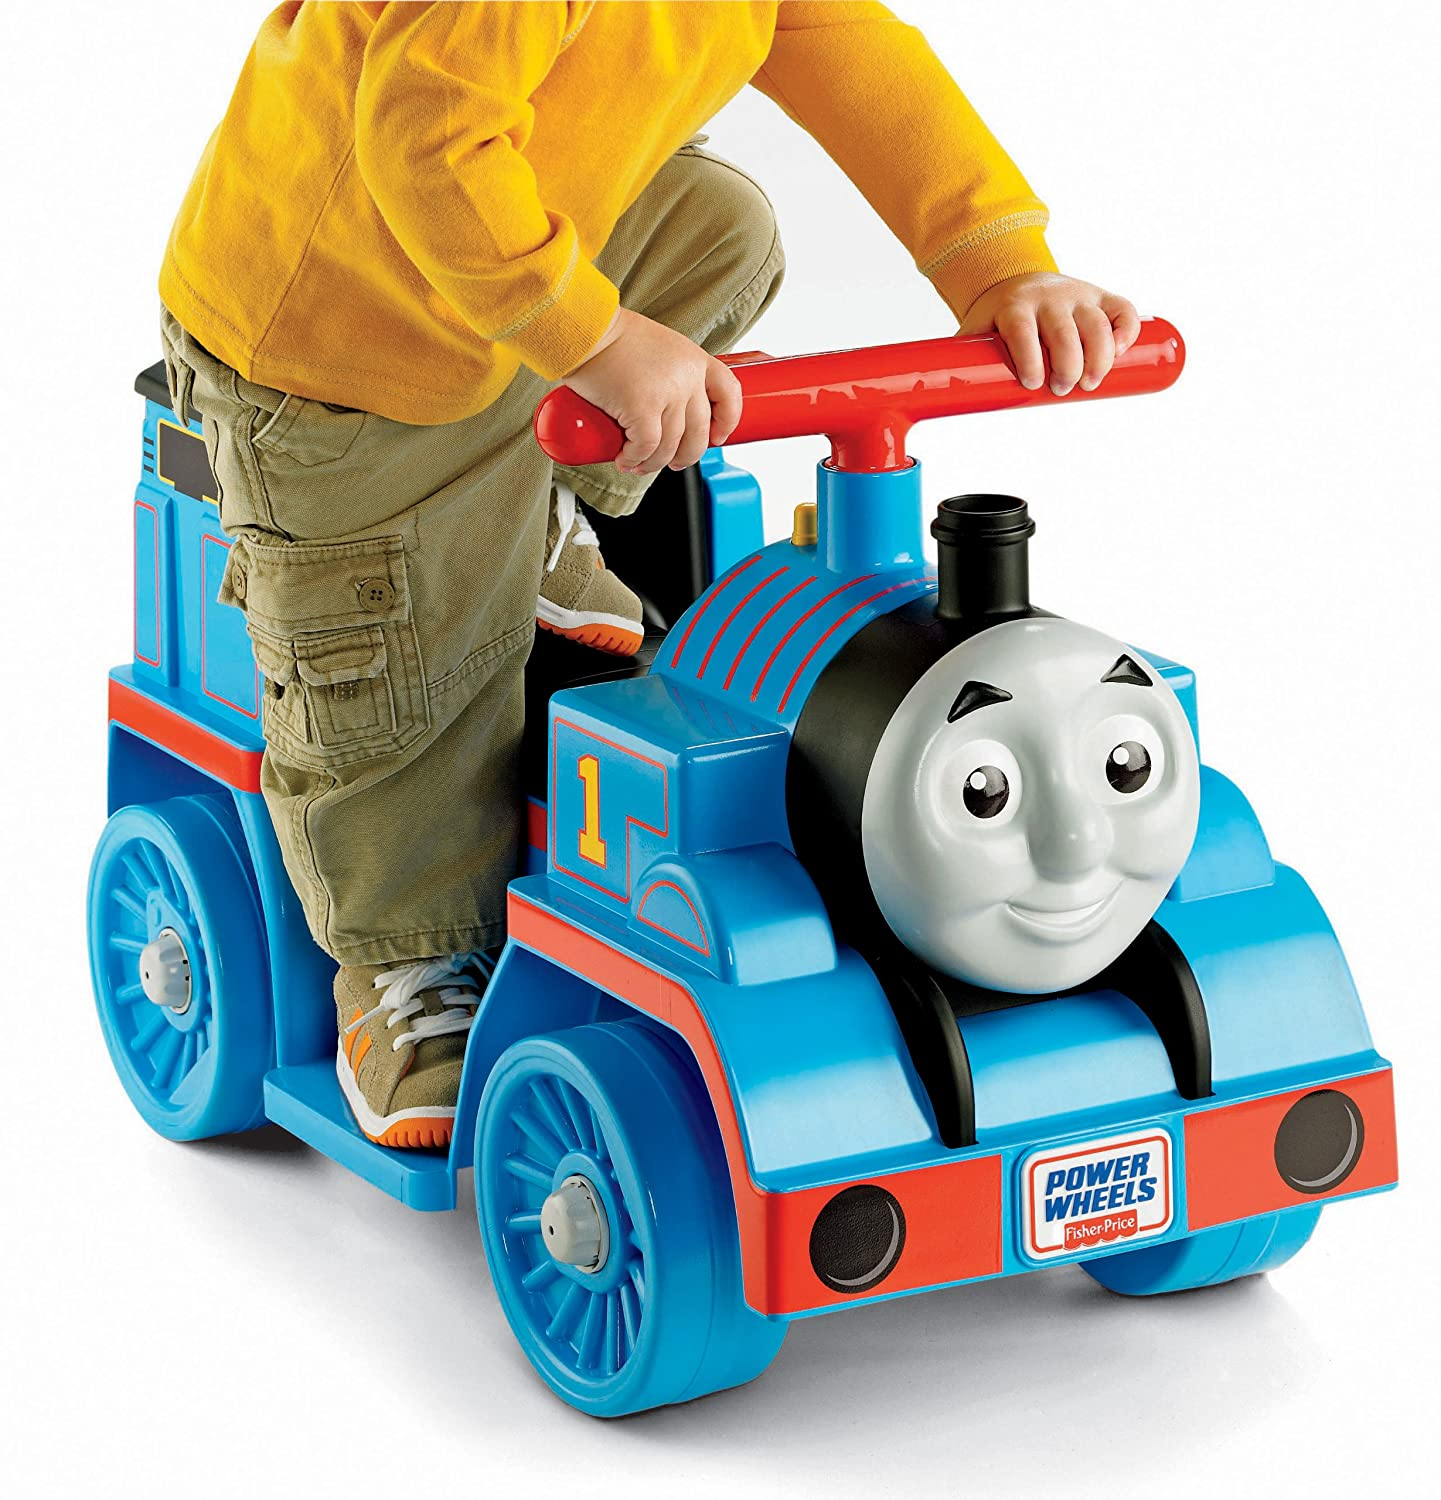 Amazon Power Wheels Thomas the Train Thomas the Tank Engine